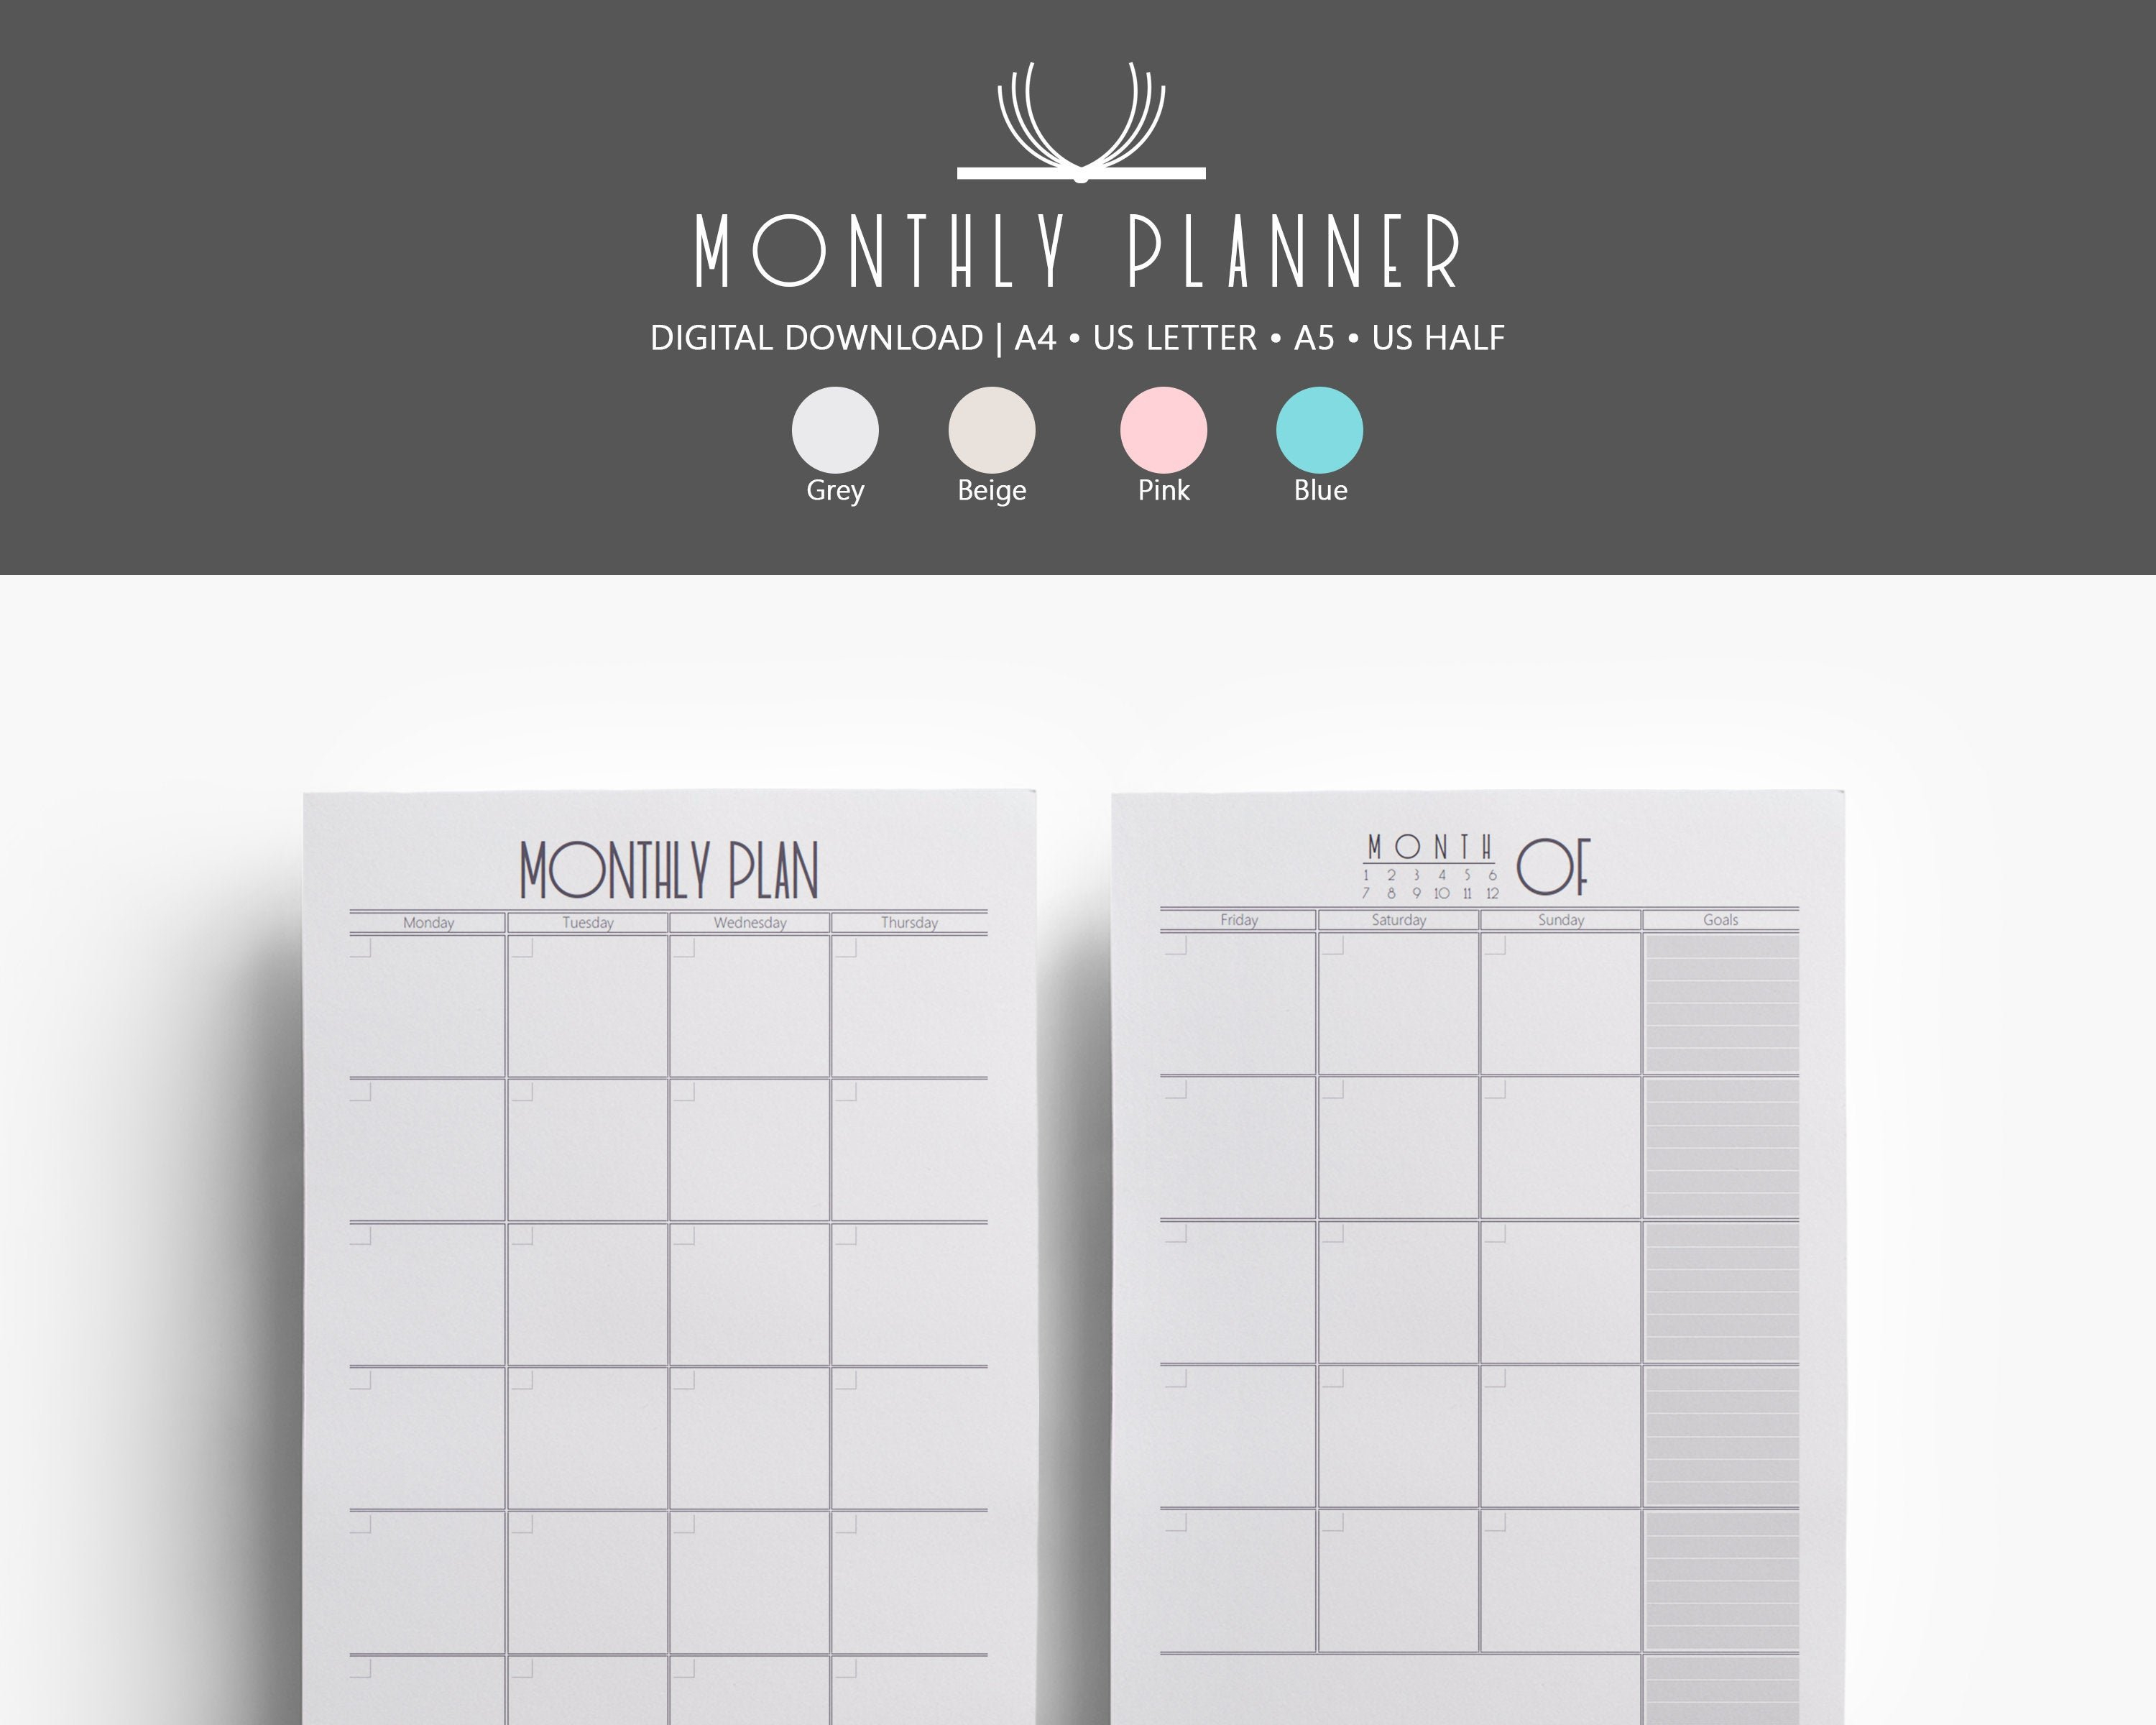 Monthly Planner, Basic Monthly Printable, Half Size, Calendar Agenda  Organizer, Journal Inserts, Webster Pages, Discbound, Filofax Refills Show Me Monthly Calendars With Agenda Pages That Are 5.5X8.5